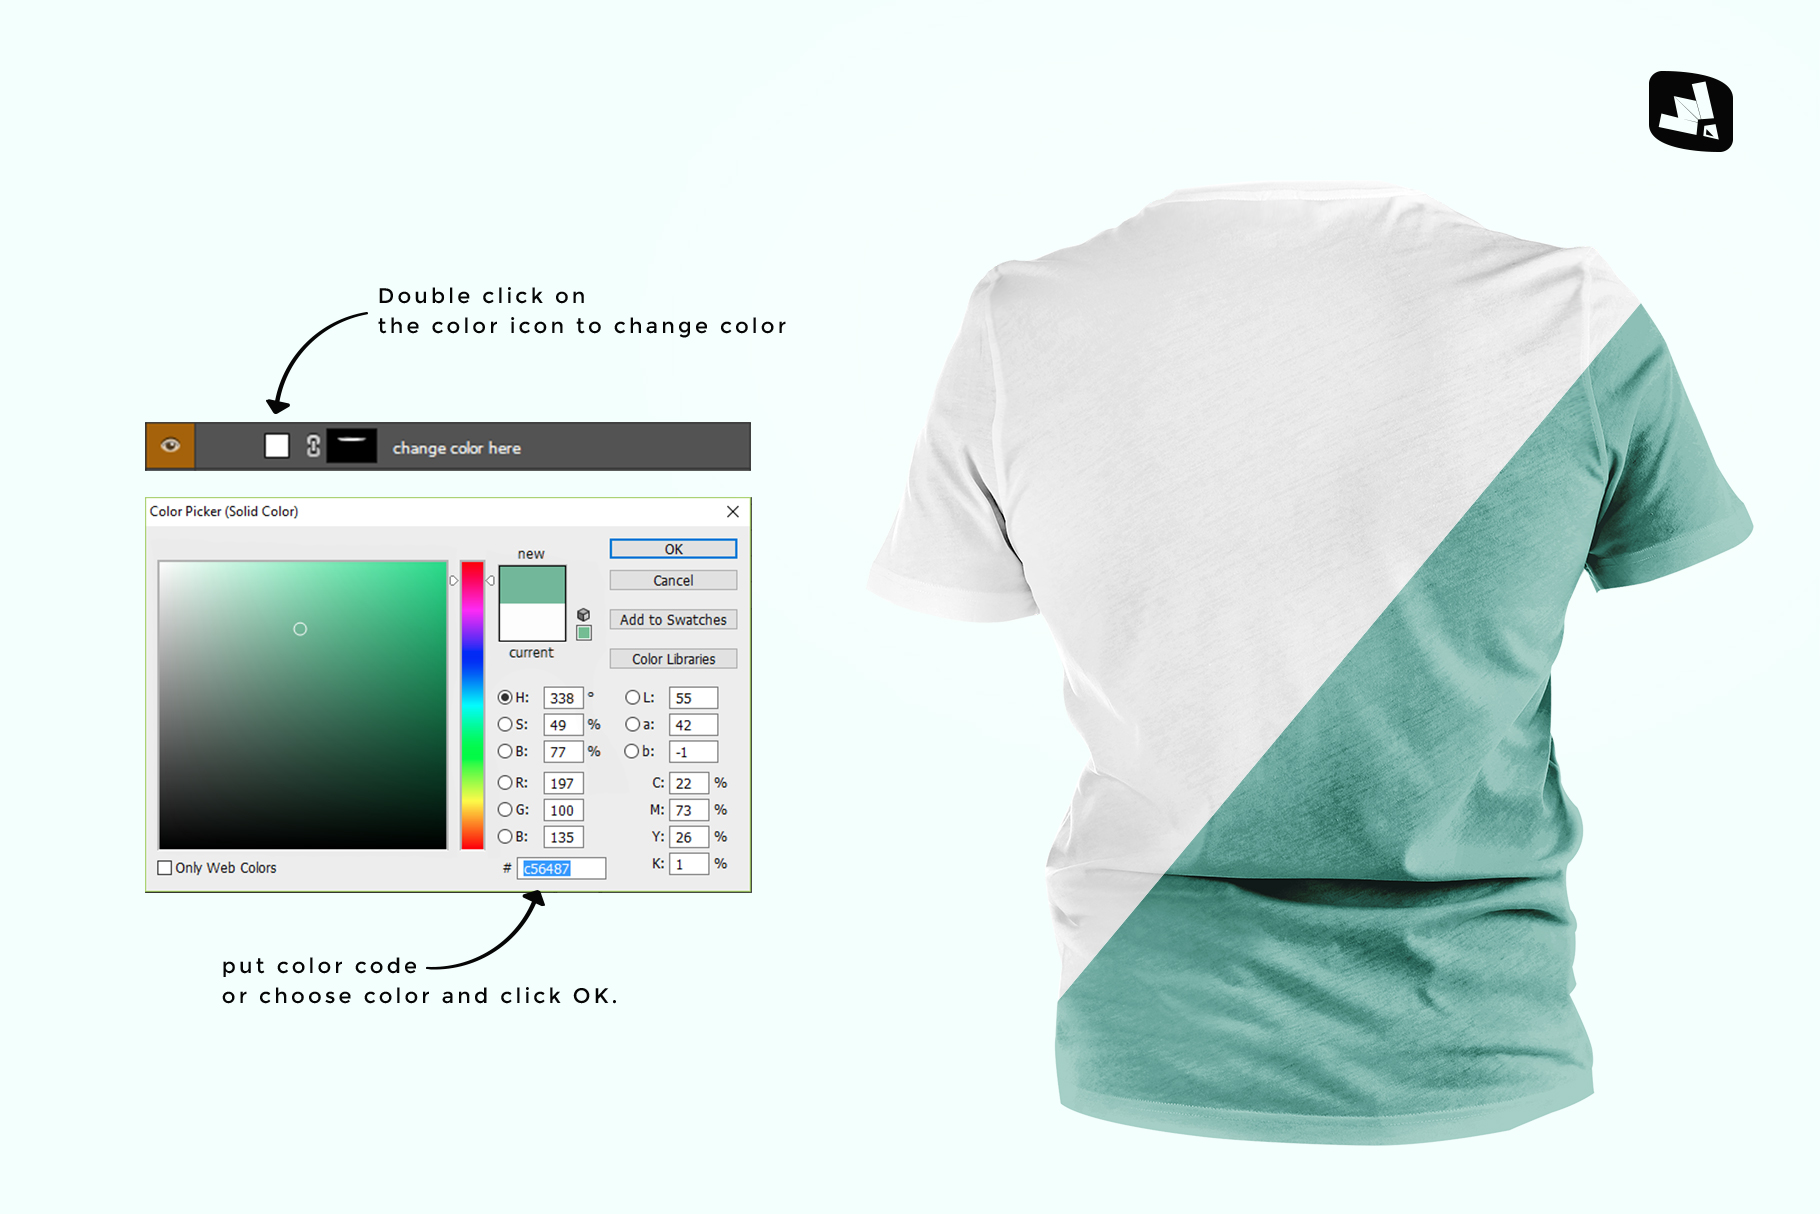 how to change color of the men's round collar tshirt mockup